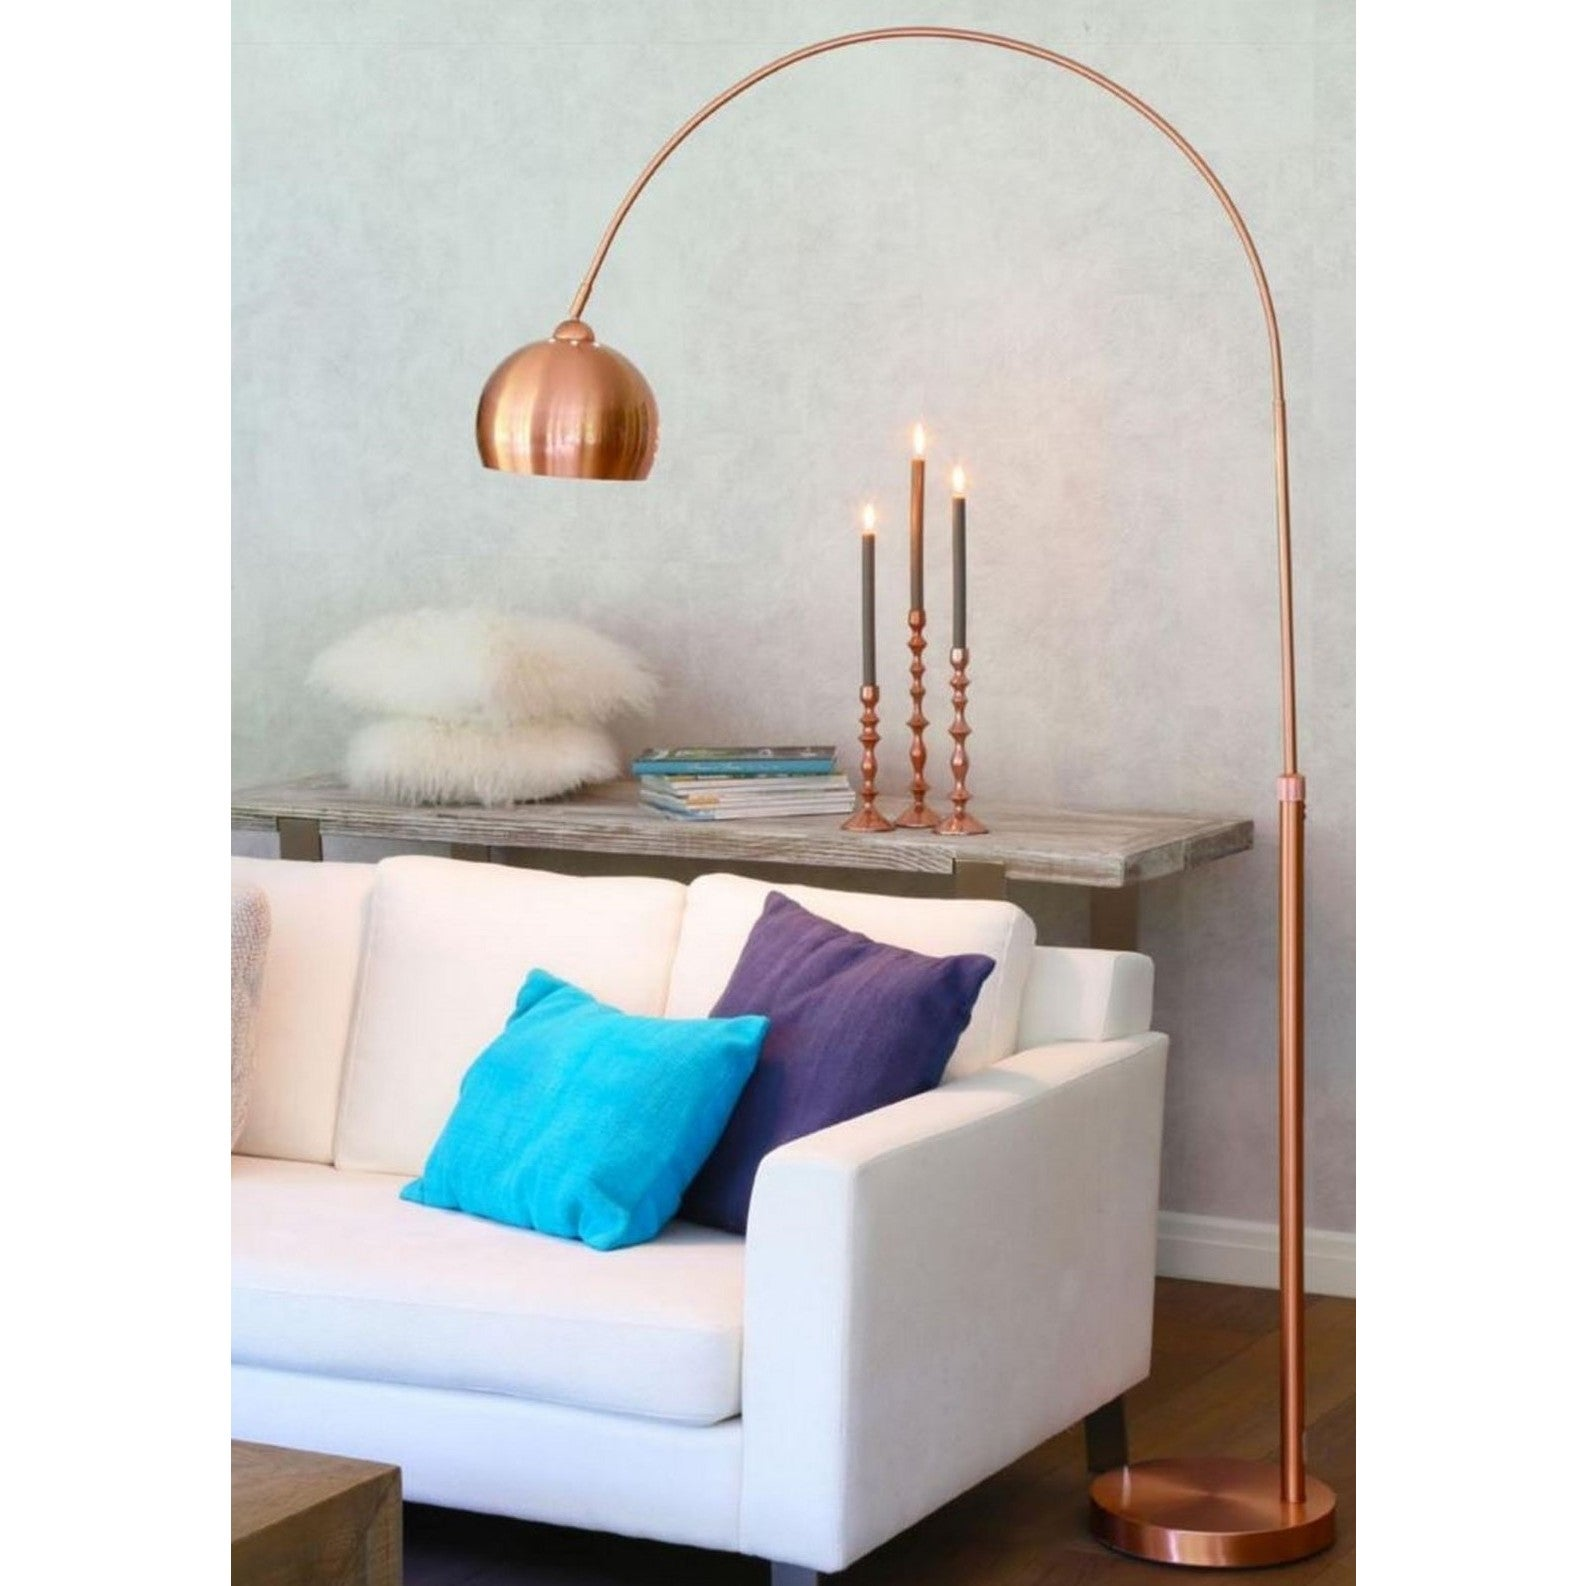 Image of: Shop Black Friday Deals On Urban Designs Solid Rose Gold Finished Iron 60 Watt 1 Light Arc Style Floor Lamp With Dome Shade And Marble Stone Base Overstock 19576315